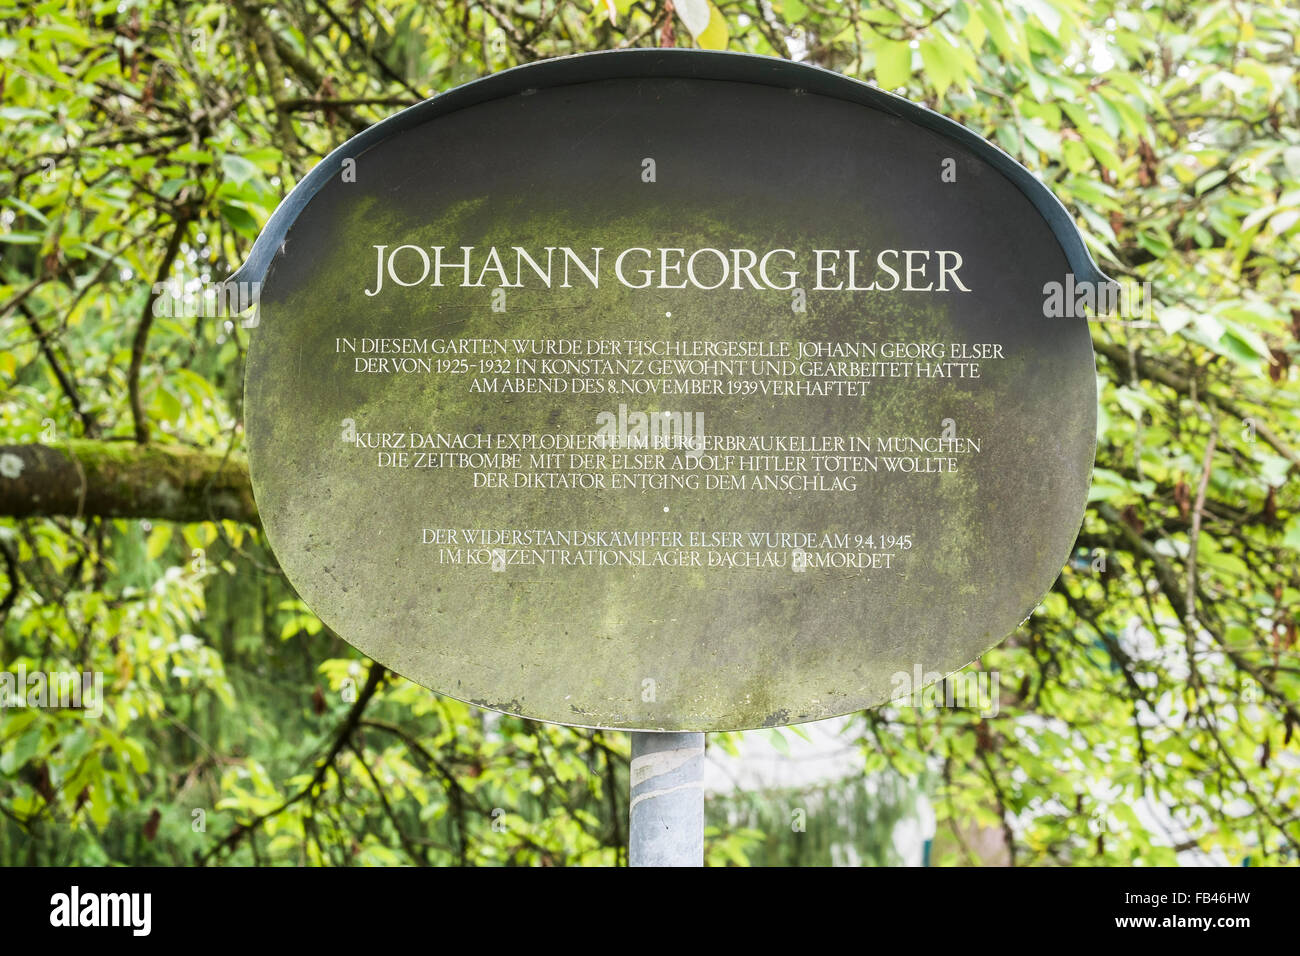 commemorative plaque for johann georg elser, at the place of his  detention, who planned and carried out an assasination Stock Photo